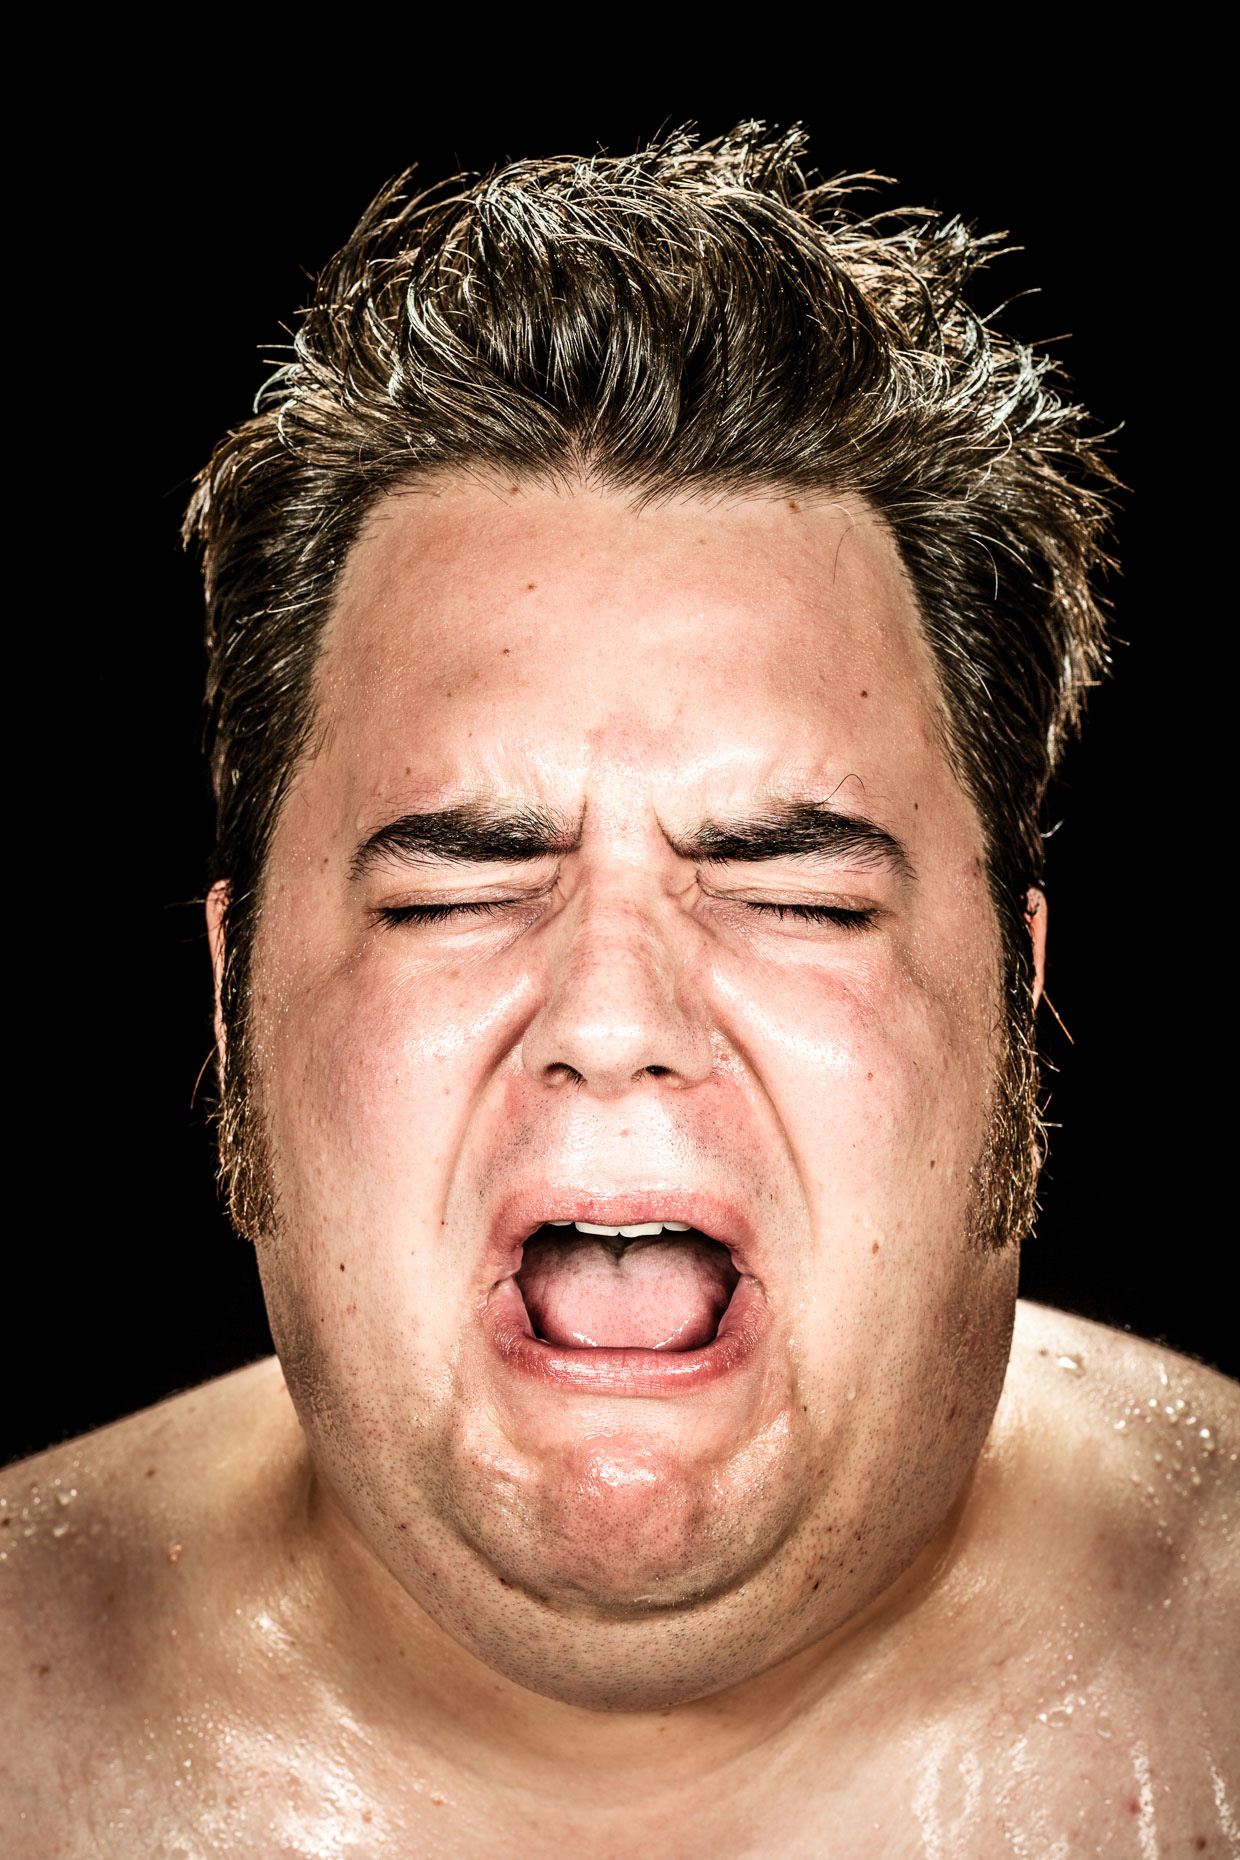 Editorial Character portrait of actor Jason Rouse crying. He